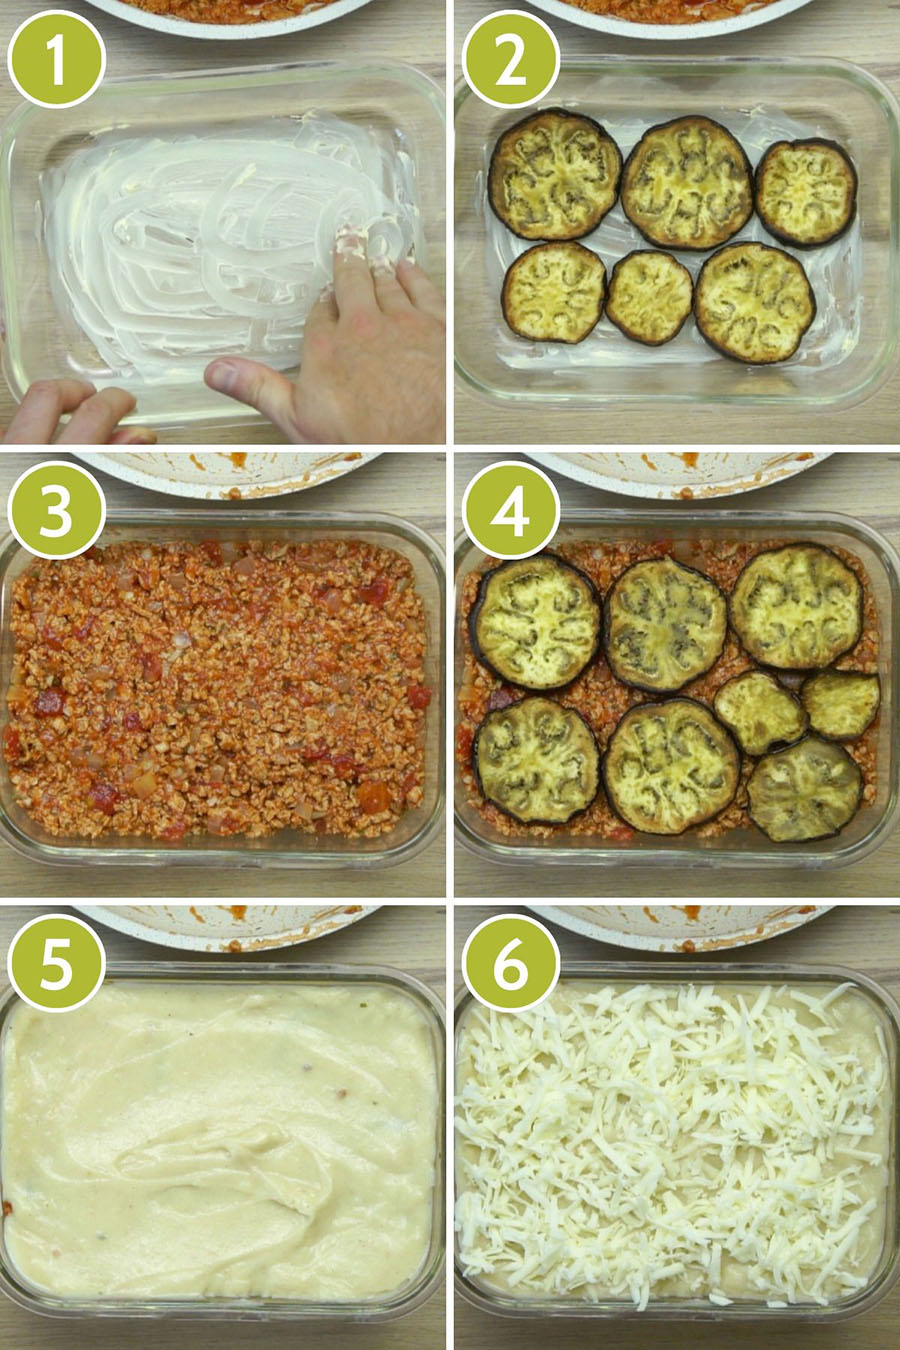 6 photo collage showing how to layer vegan moussaka, first butter, second eggplant slices, third mince, fourth eggplant slices, fifth white sauce, sixth shredded cheese